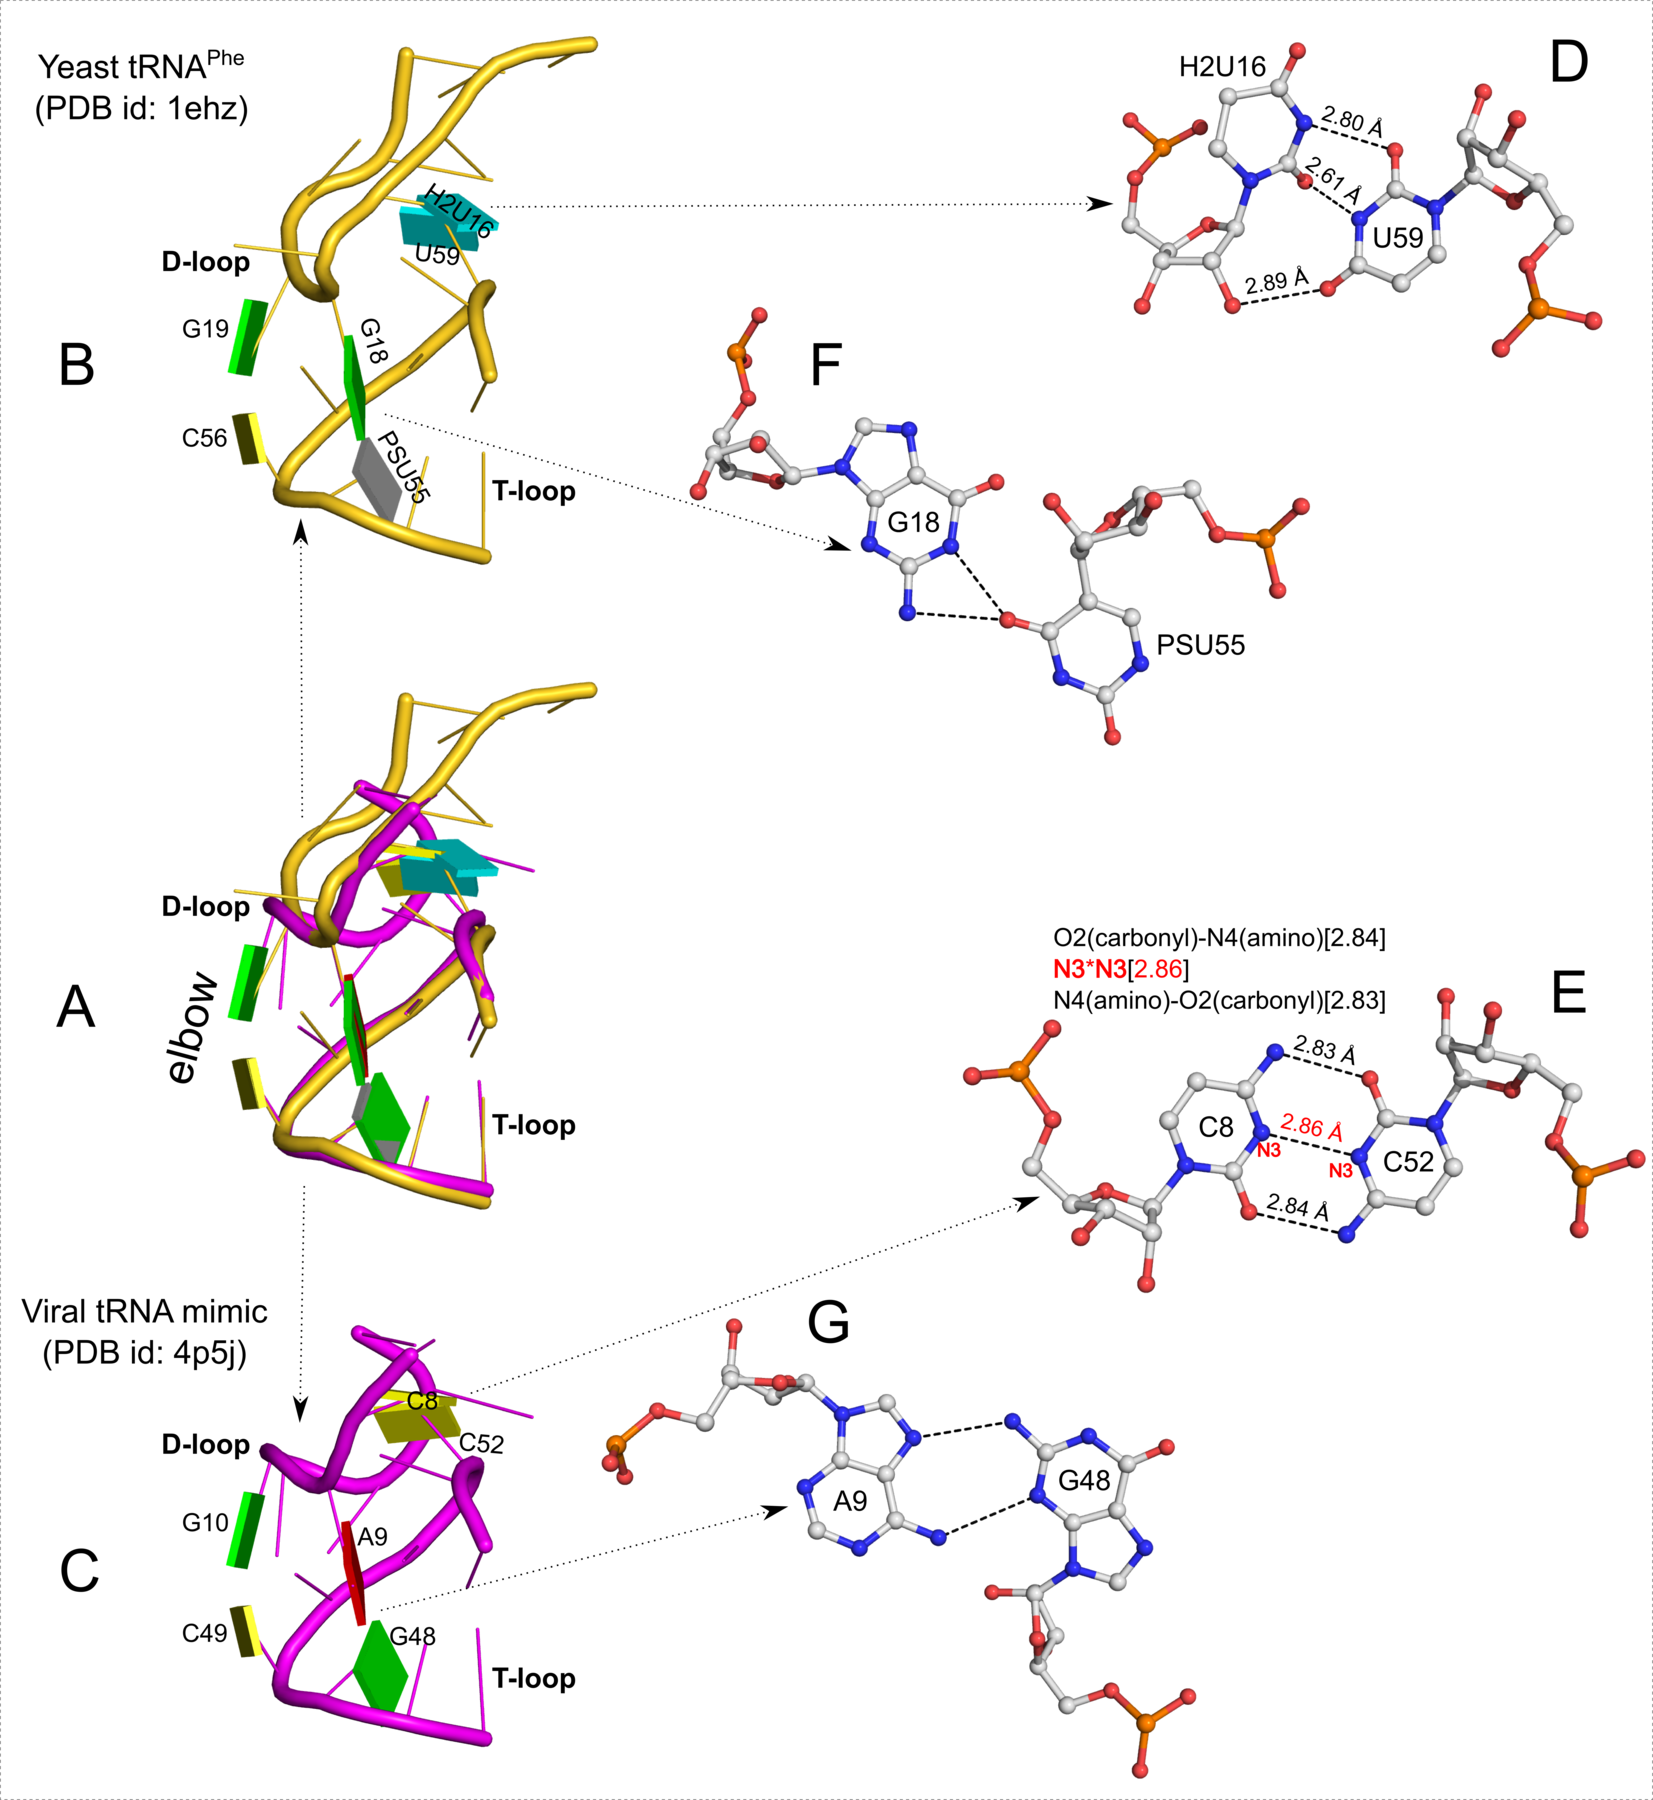 """Three similarly positioned base pairs hold the D- and T-loops of tRNA and its viral mimic in place"" title=""Three similarly positioned base pairs hold the D- and T-loops of tRNA and its viral mimic in place"""